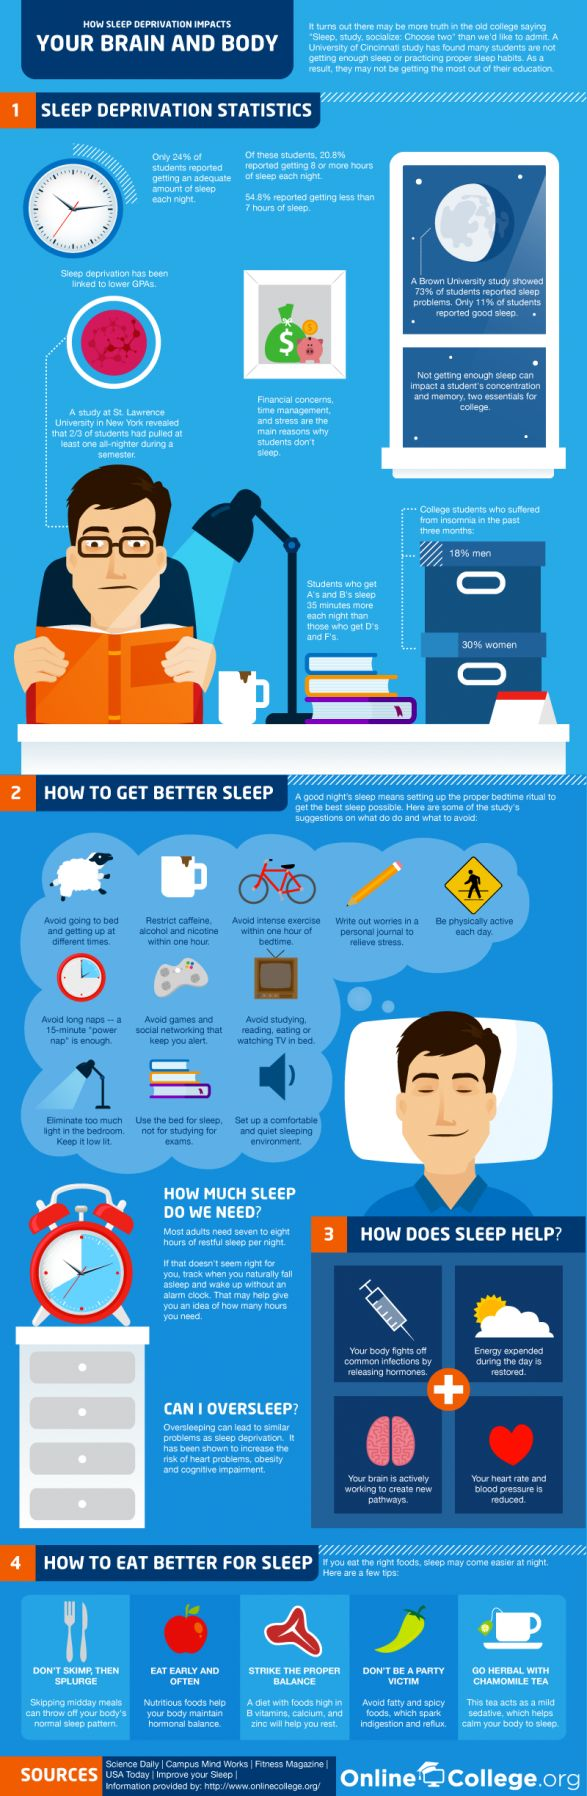 How #Sleep Deprivation Affects Your #Brain & #Body ... another recurring theme for me!